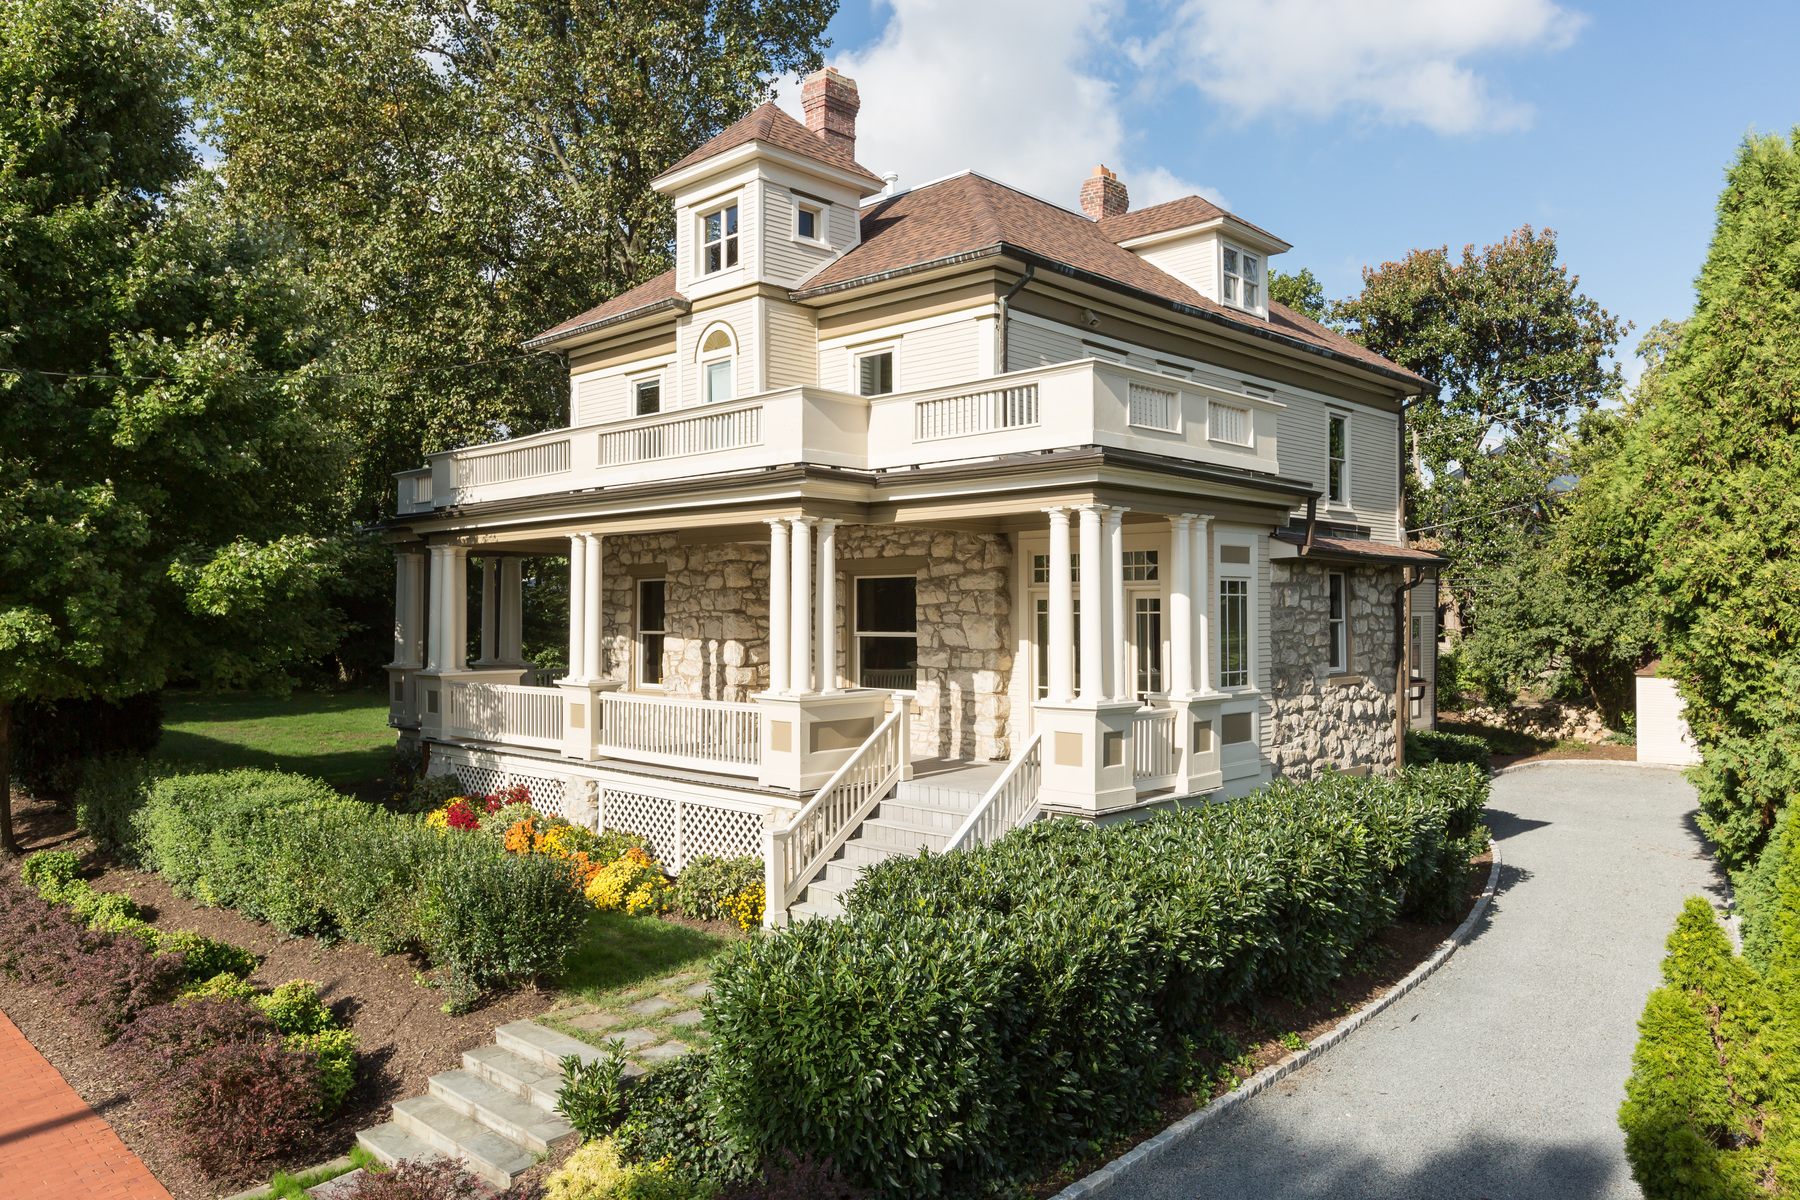 Single Family Home for Sale at One of Washington's Grand and Important Homes 4900 Western Ave Bethesda, Maryland, 20816 United States